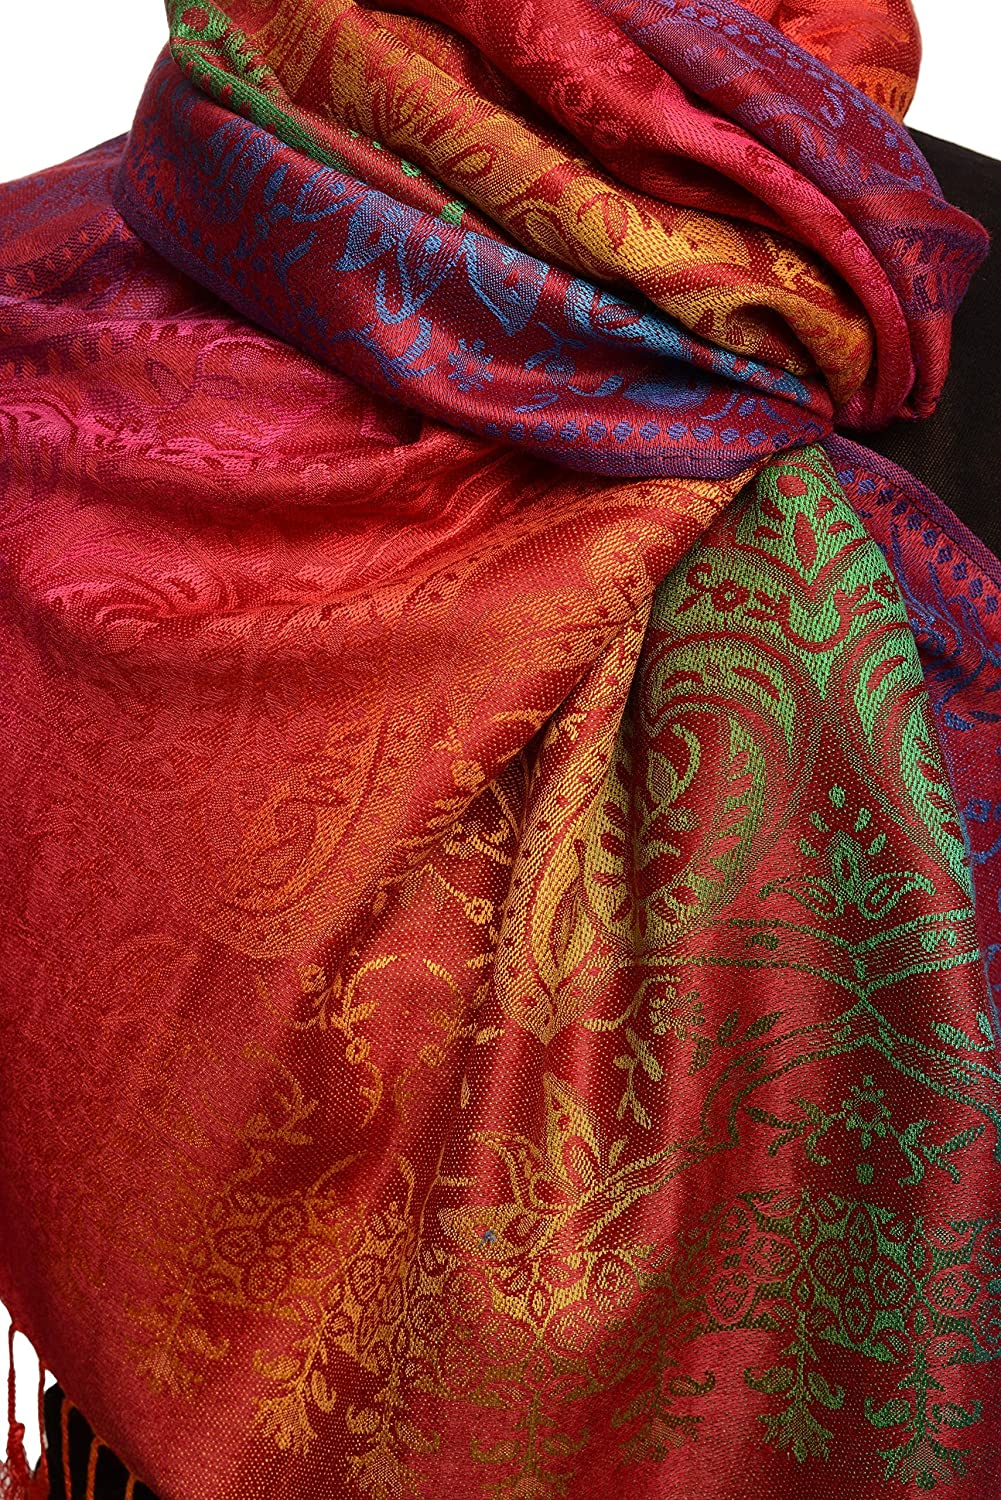 Rot Scarf Schal Einheitsgroesse 70cm x 180cm LissKiss Mirrored Ombre Paisleys On Red Pashmina Feel With Tassels